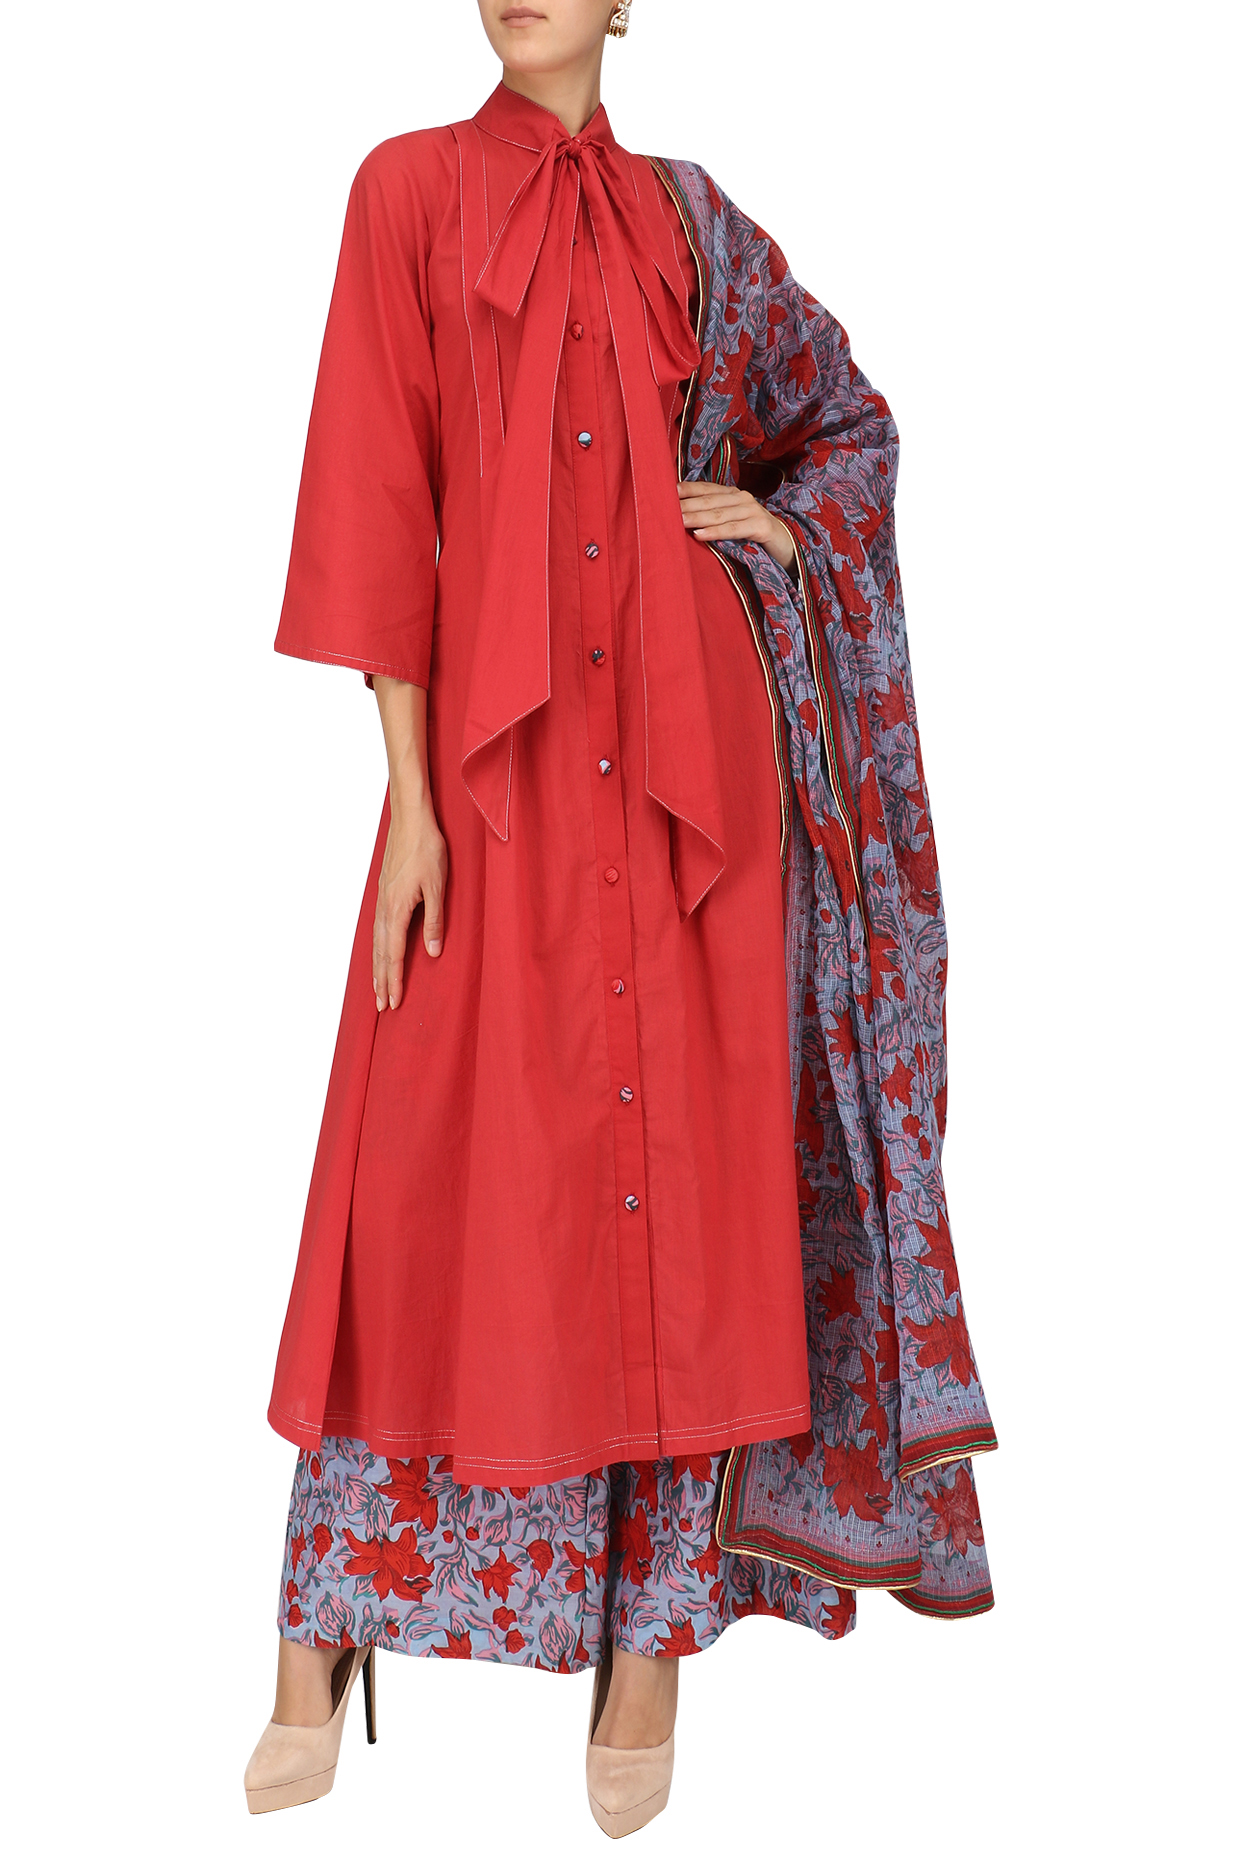 Red and Blue Floral Print Embroidered Flared Kurta Set